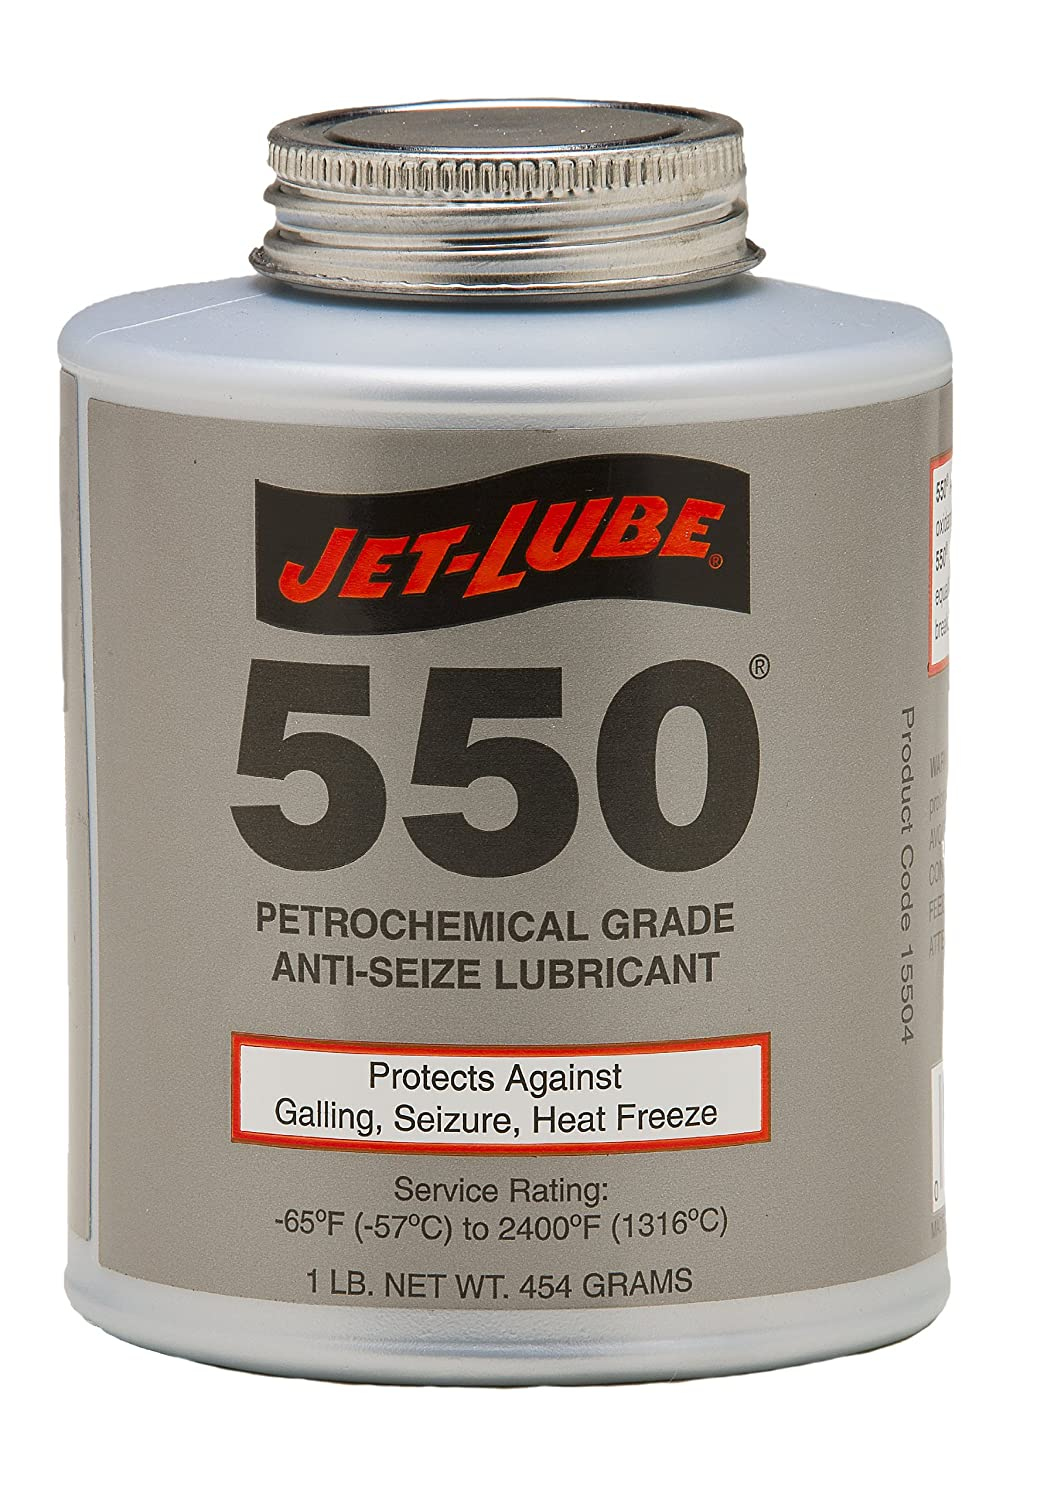 Jet-Lube 550 Nonmetallic Petrochemical Grade Anti Seize and Thread Lubricant, 1 lbs Brush Top Can 15504